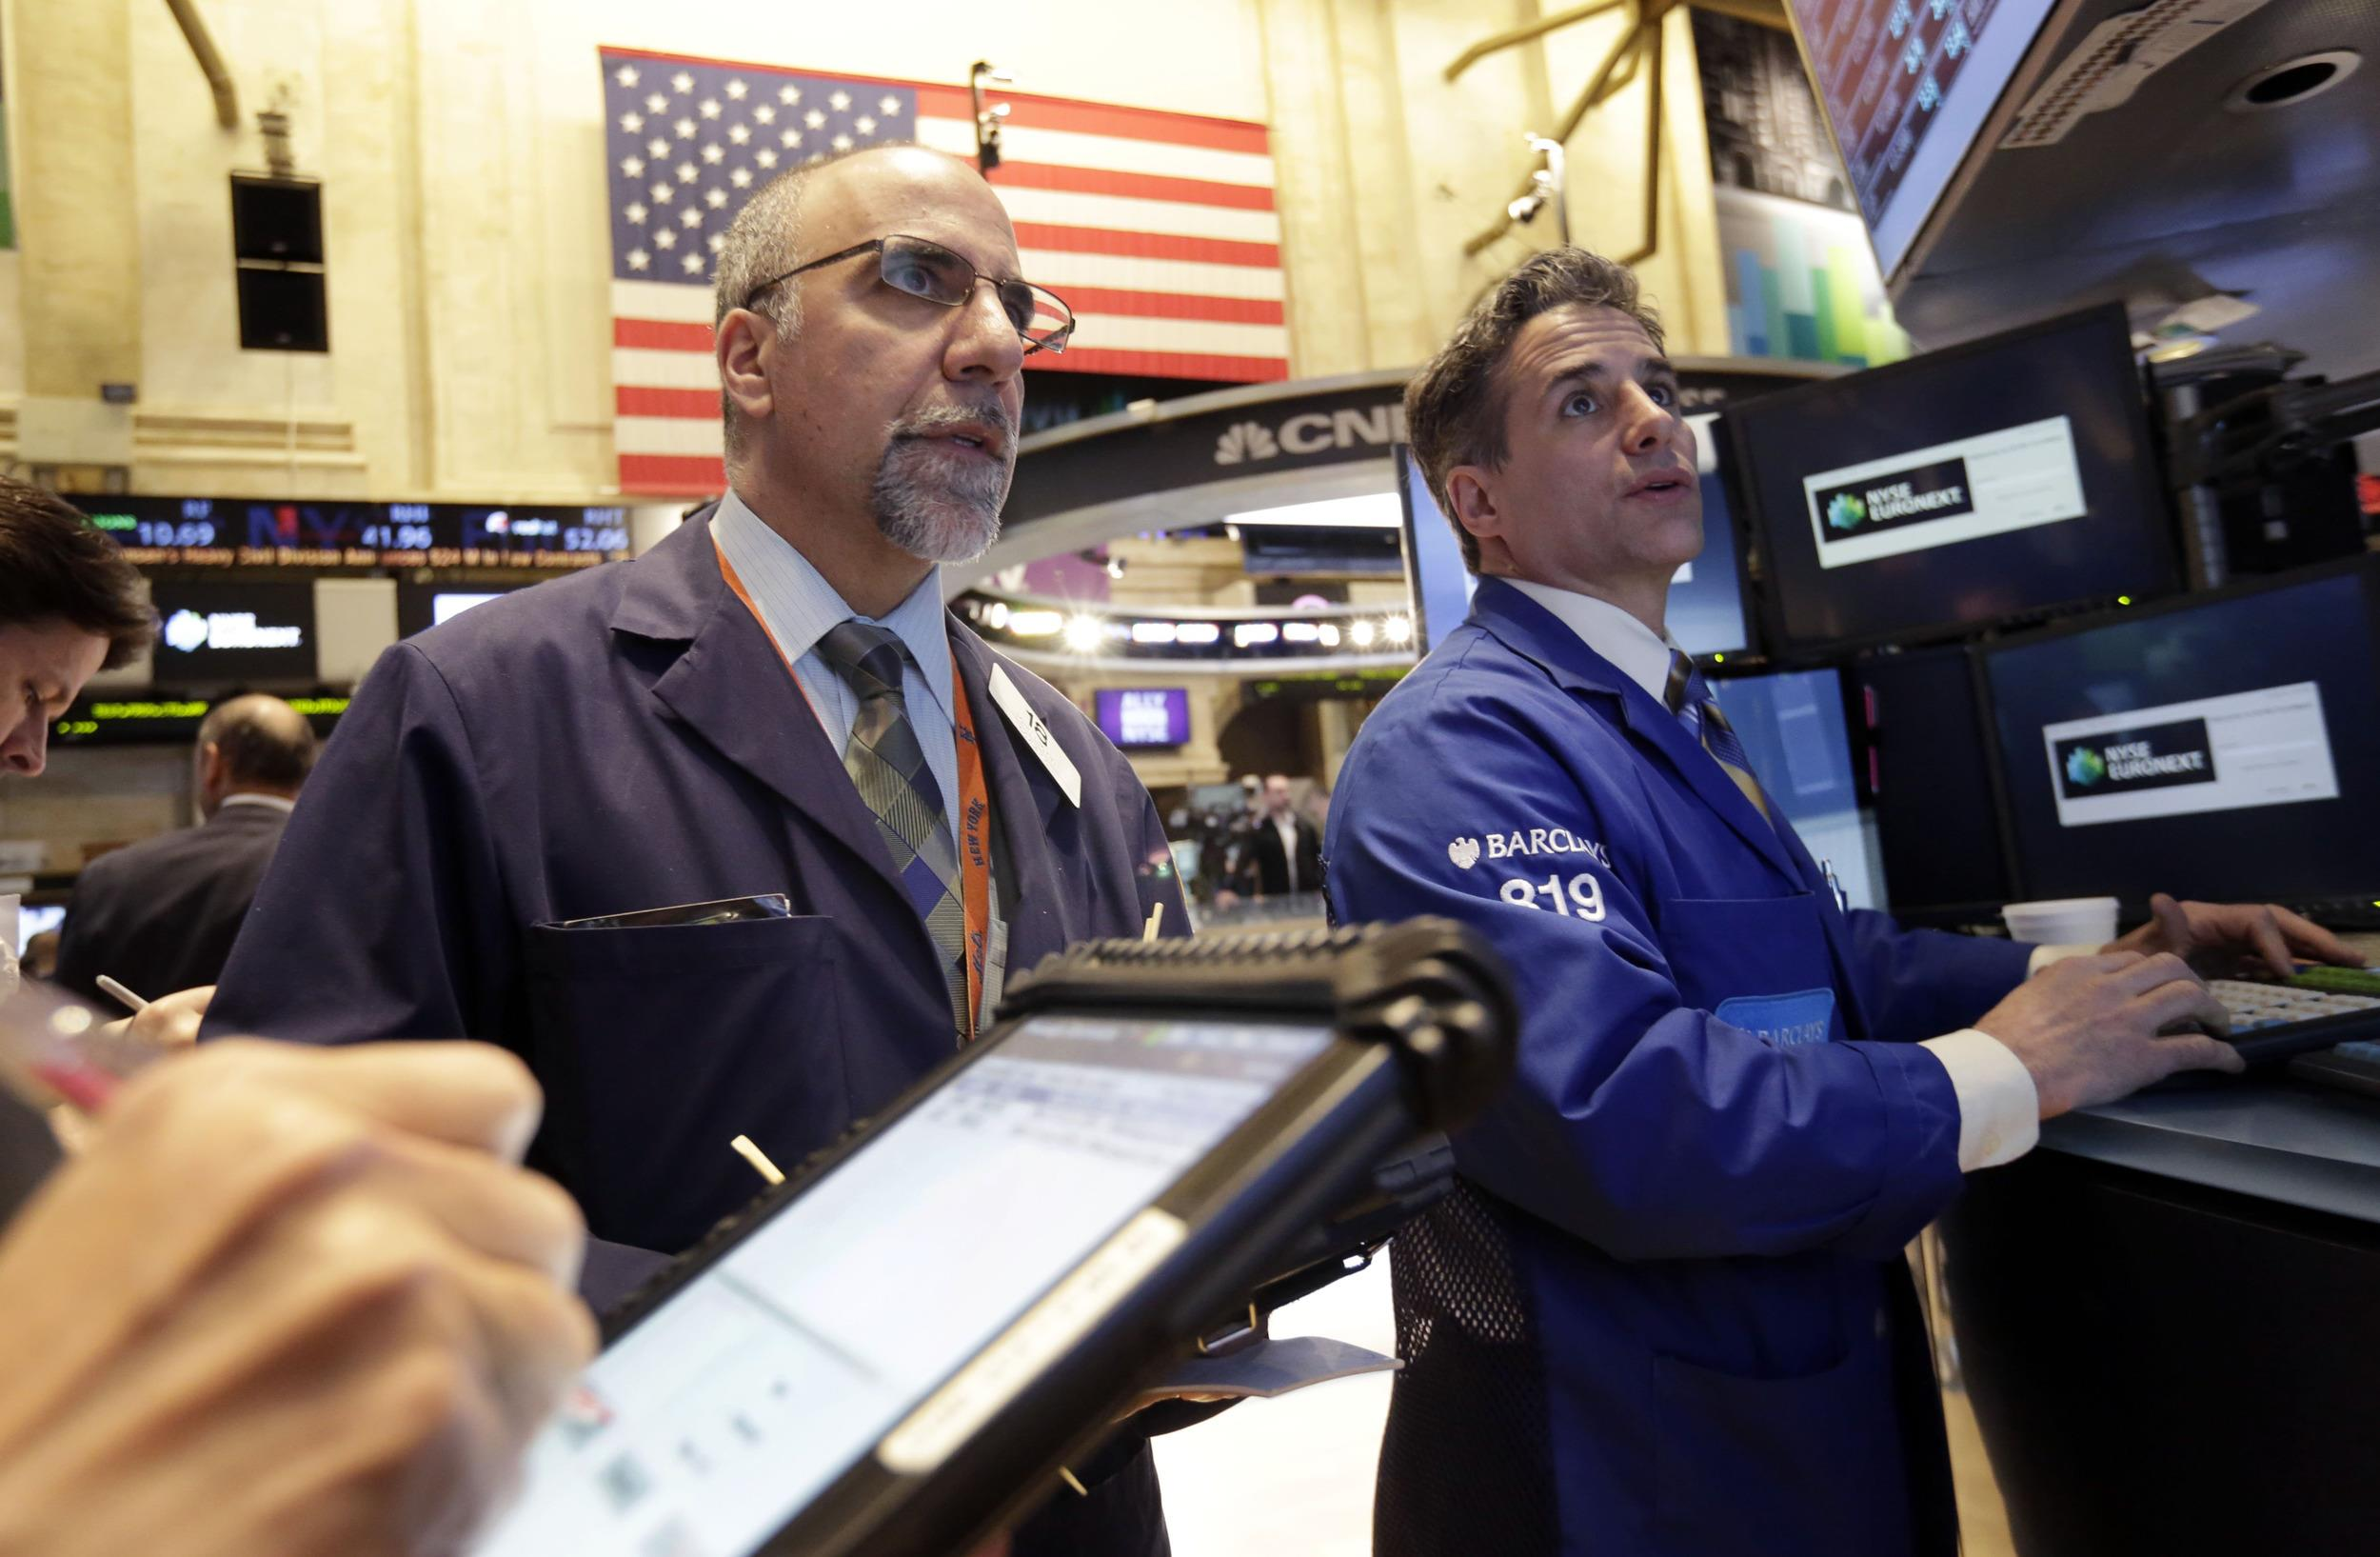 Things were not looking up in the stock markets Thursday, when a rout in tech shares led all major indices lower.